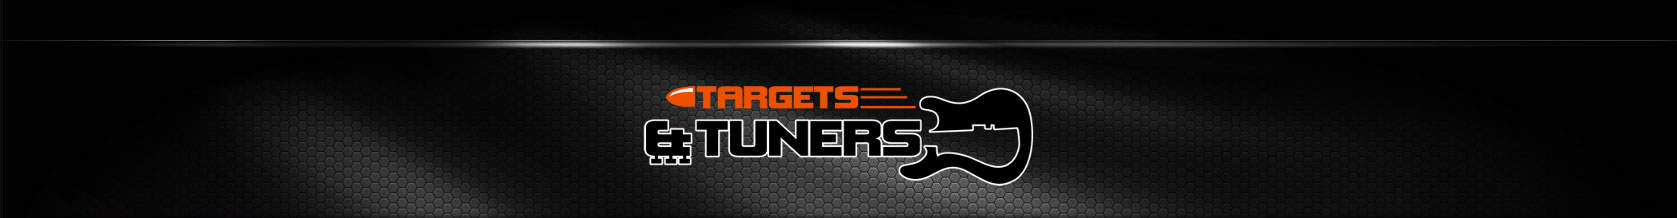 targets & tuners logo header